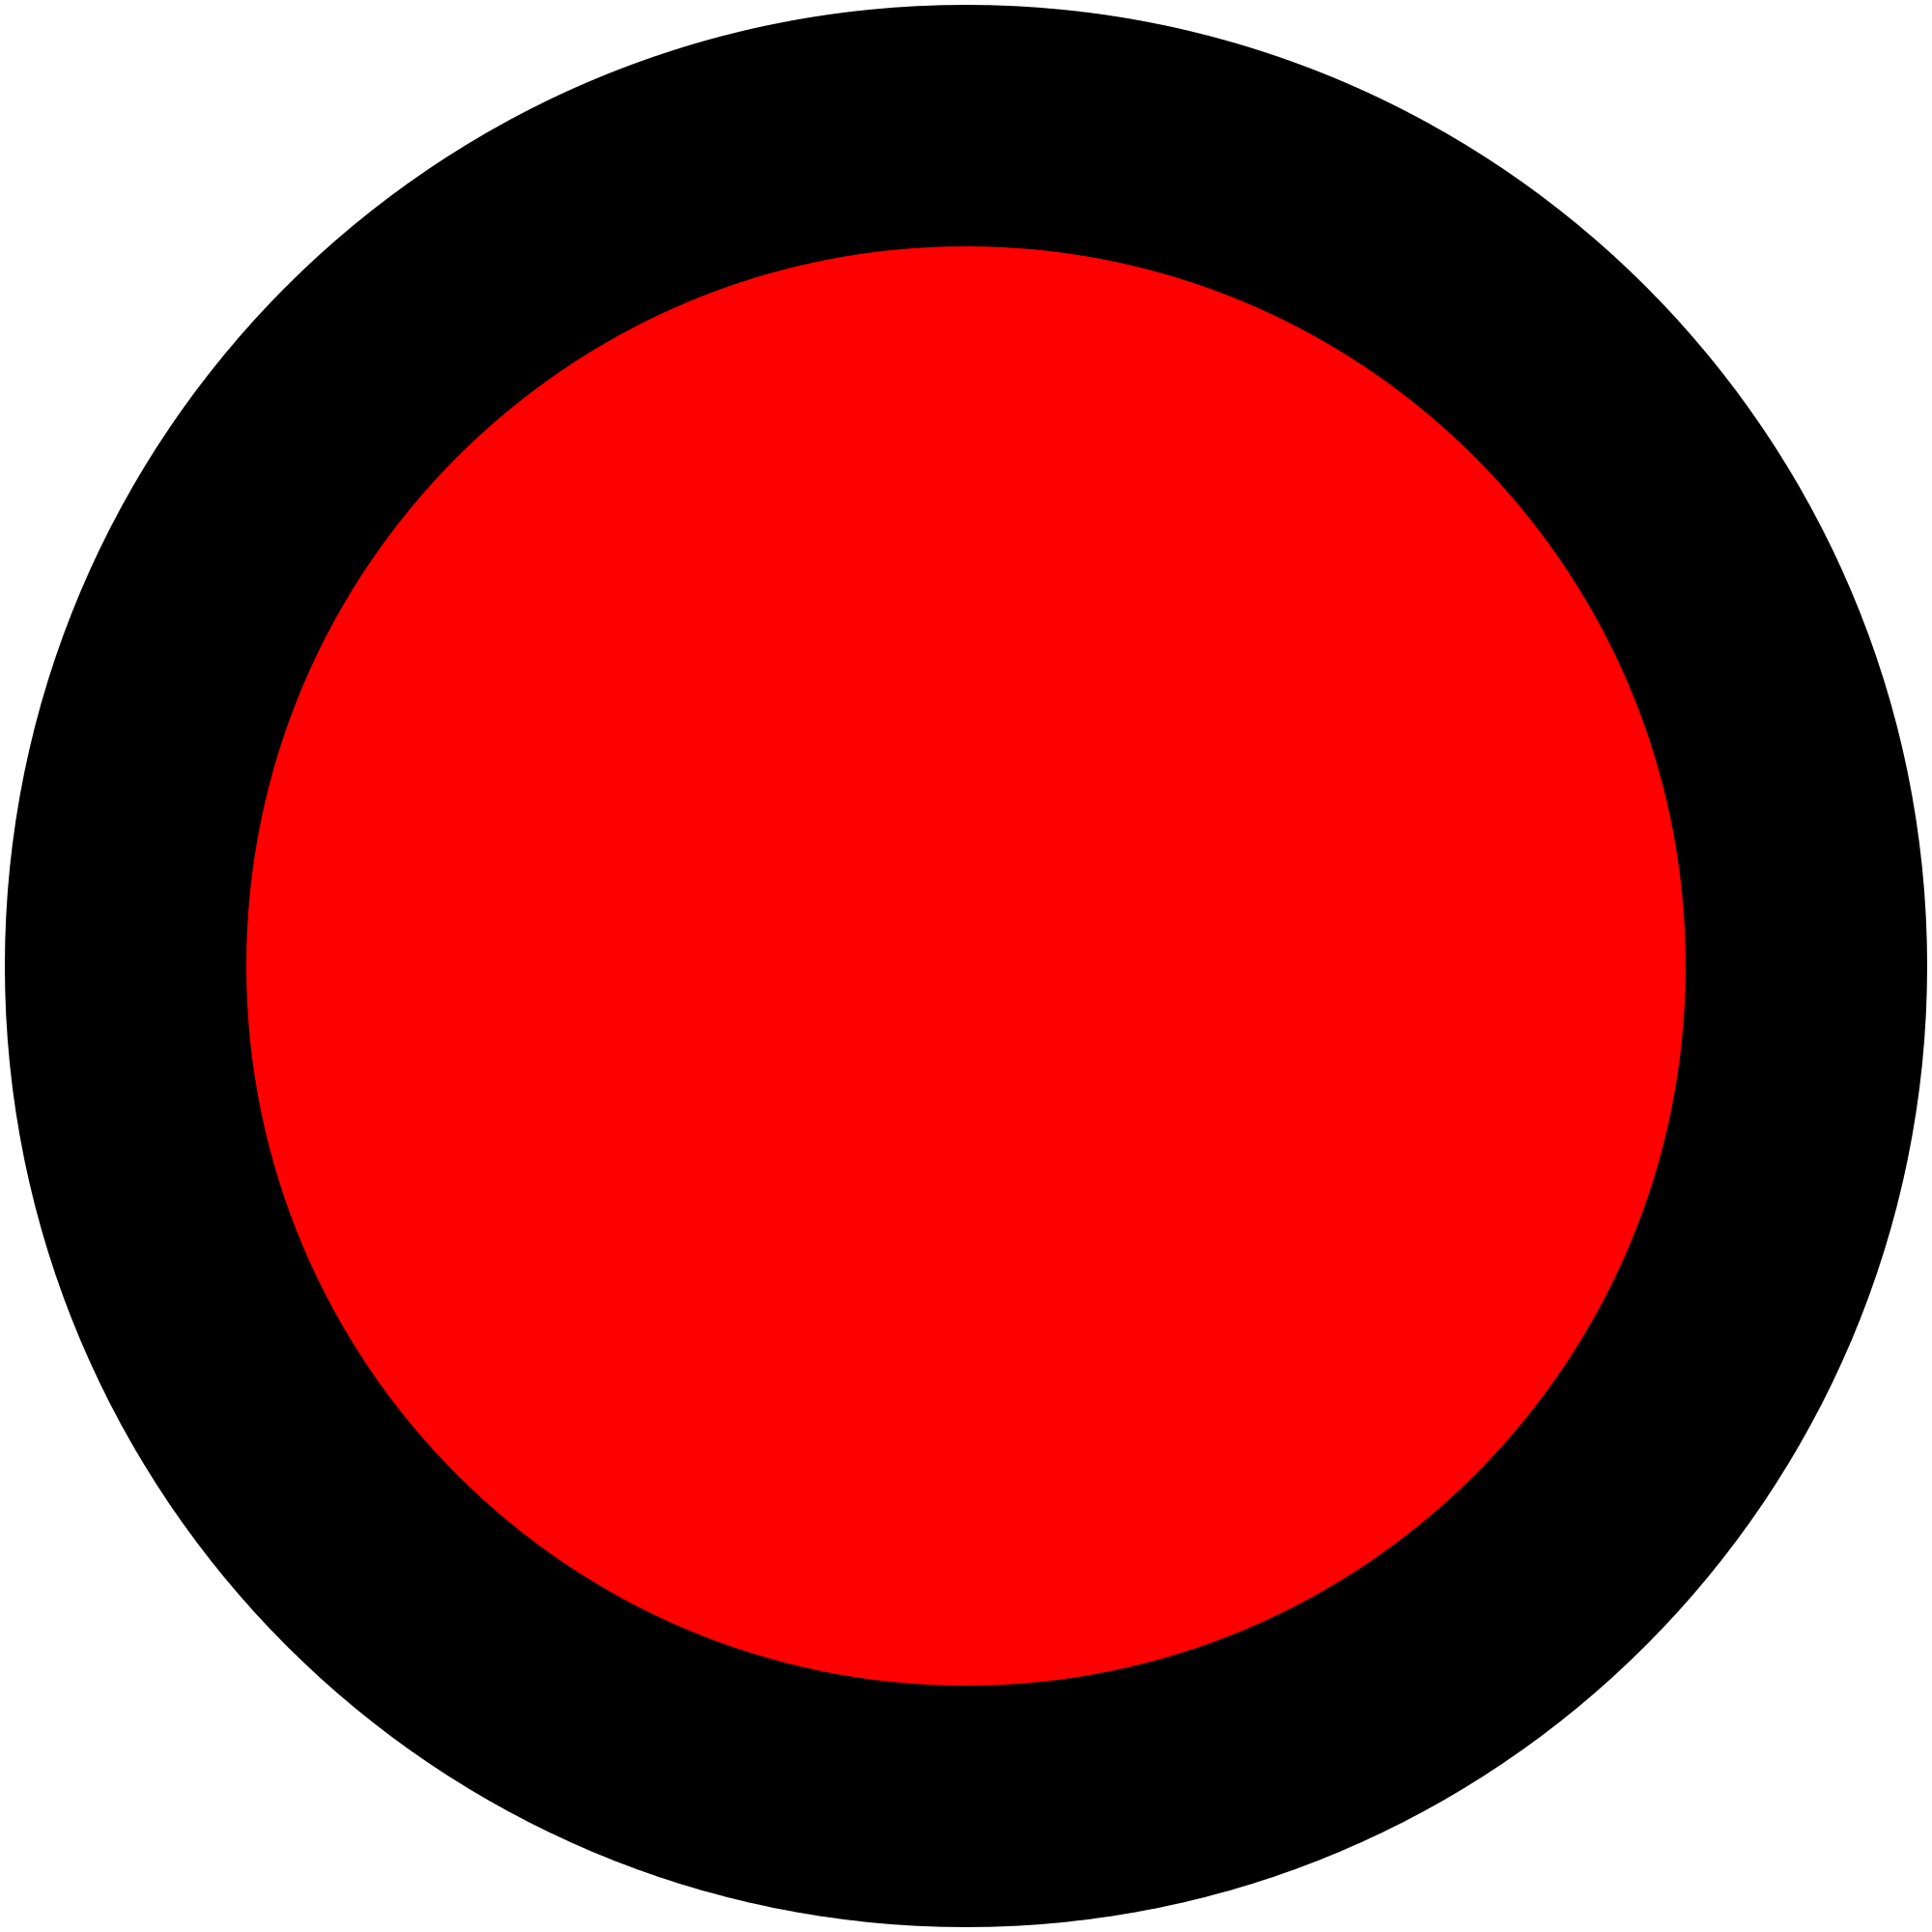 Red dot png. Images free download